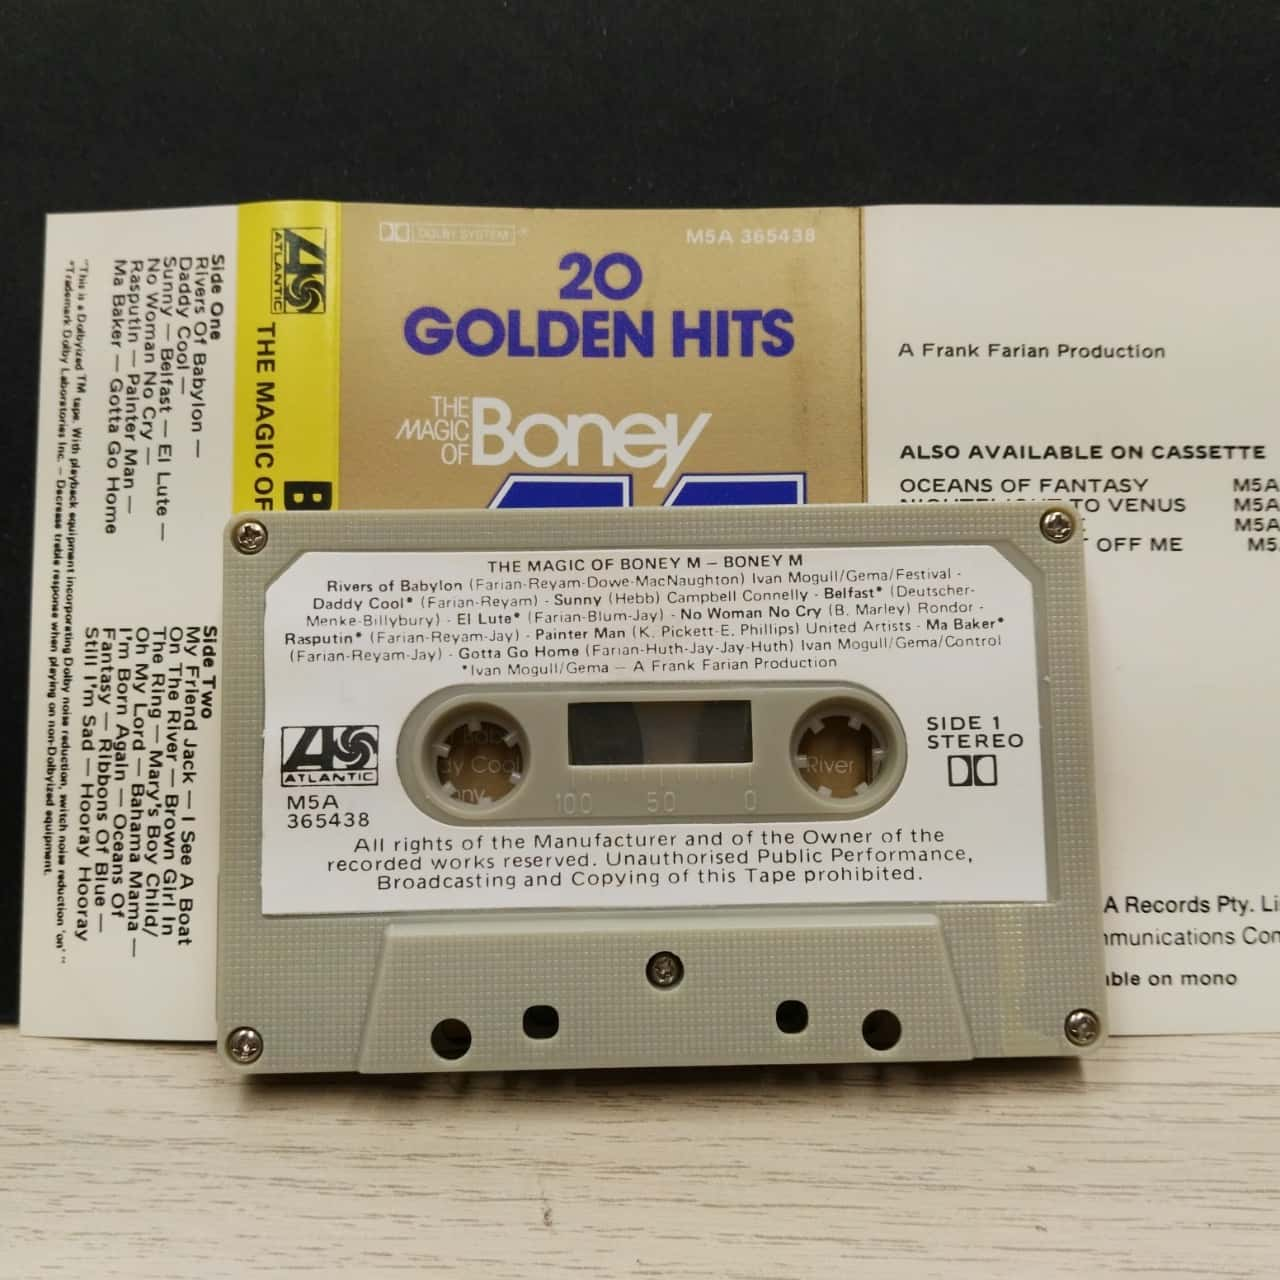 Music Cassette - The Magic of Boney M - 20 Golden Hits